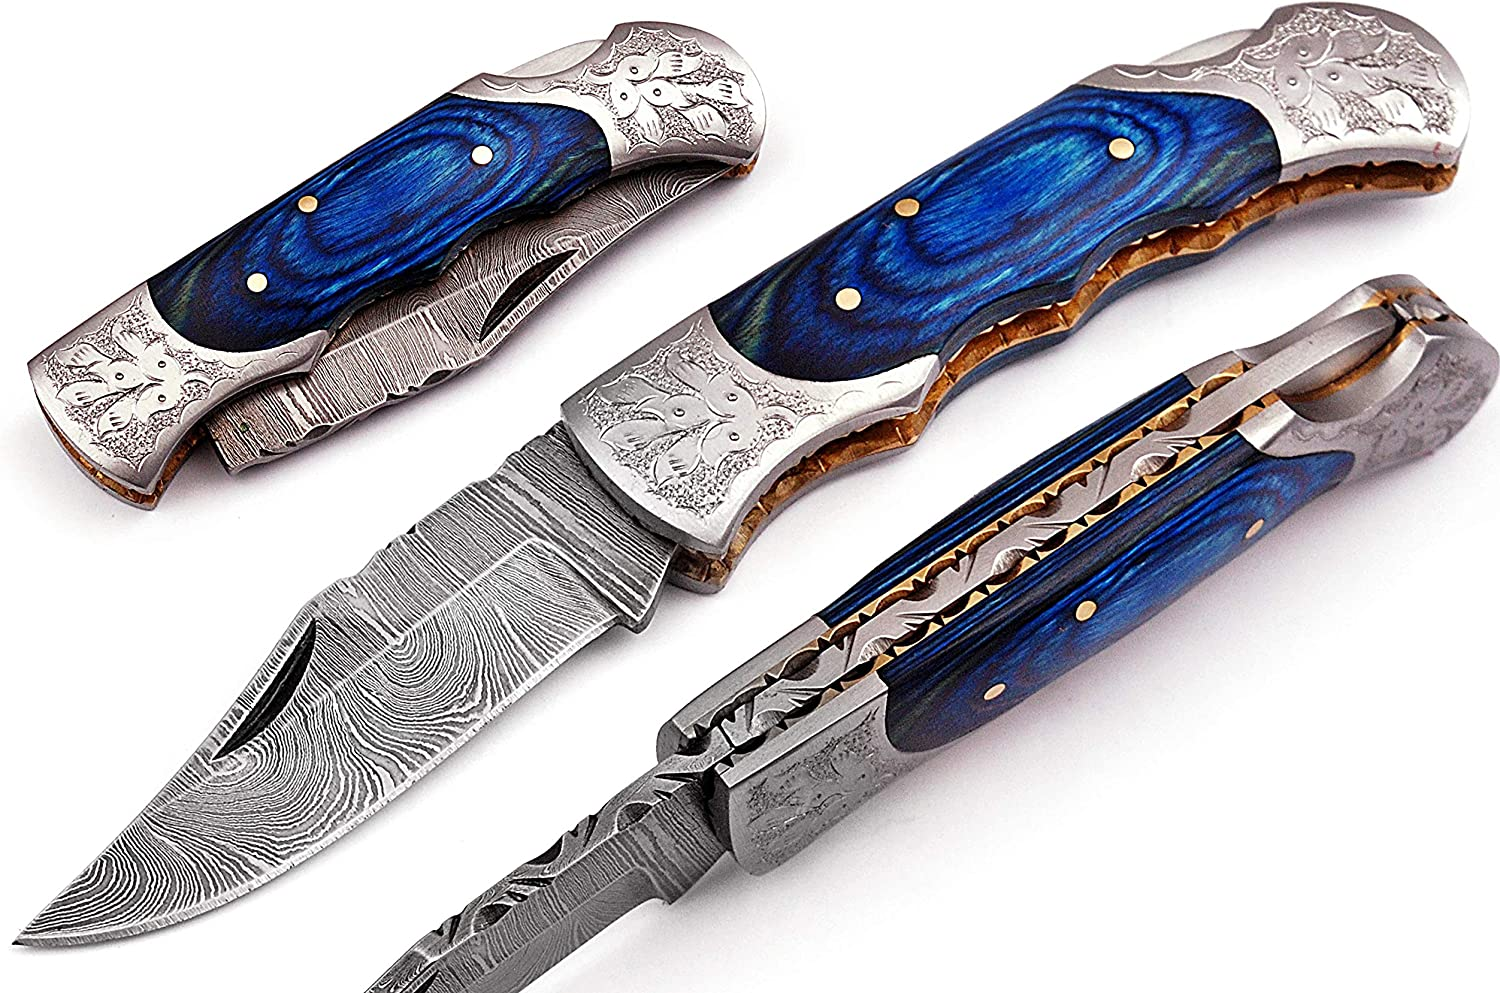 Hand New arrival made Damascus steel blade Hunting Ra knife Pocket Folding Lowest price challenge